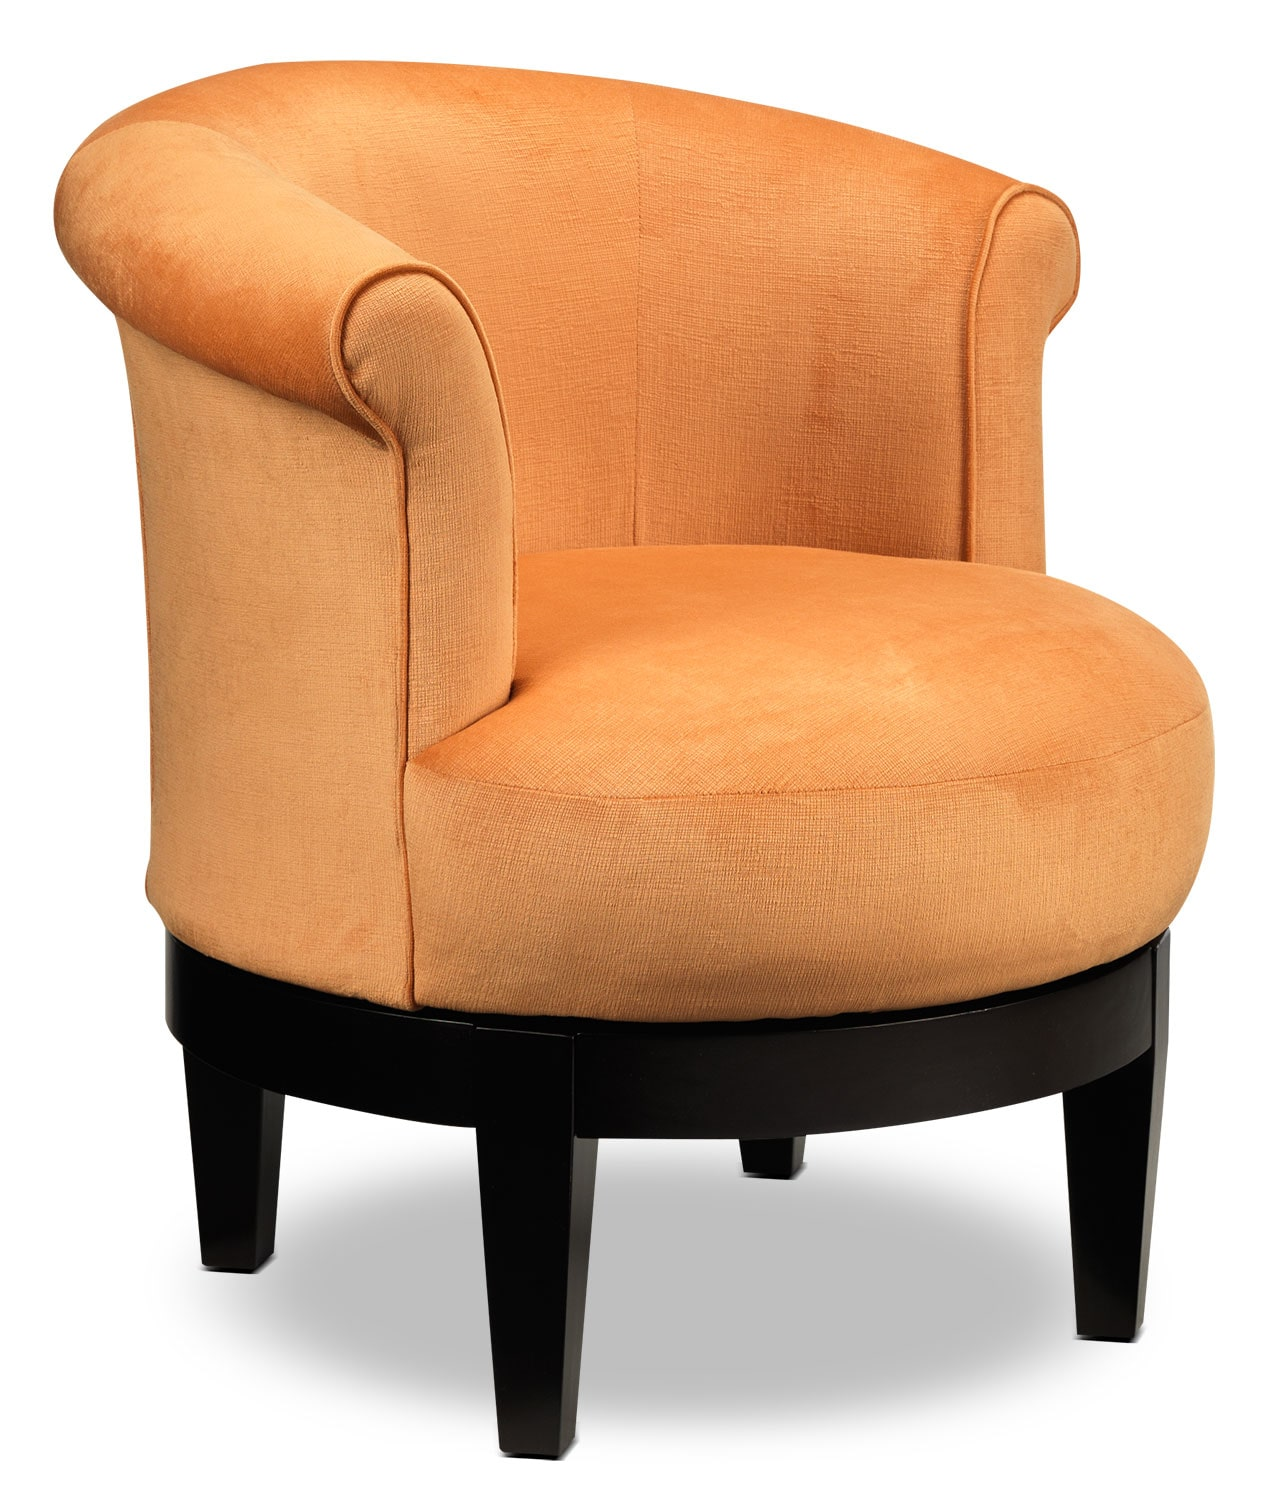 Attica Swivel Accent Chair - Orange